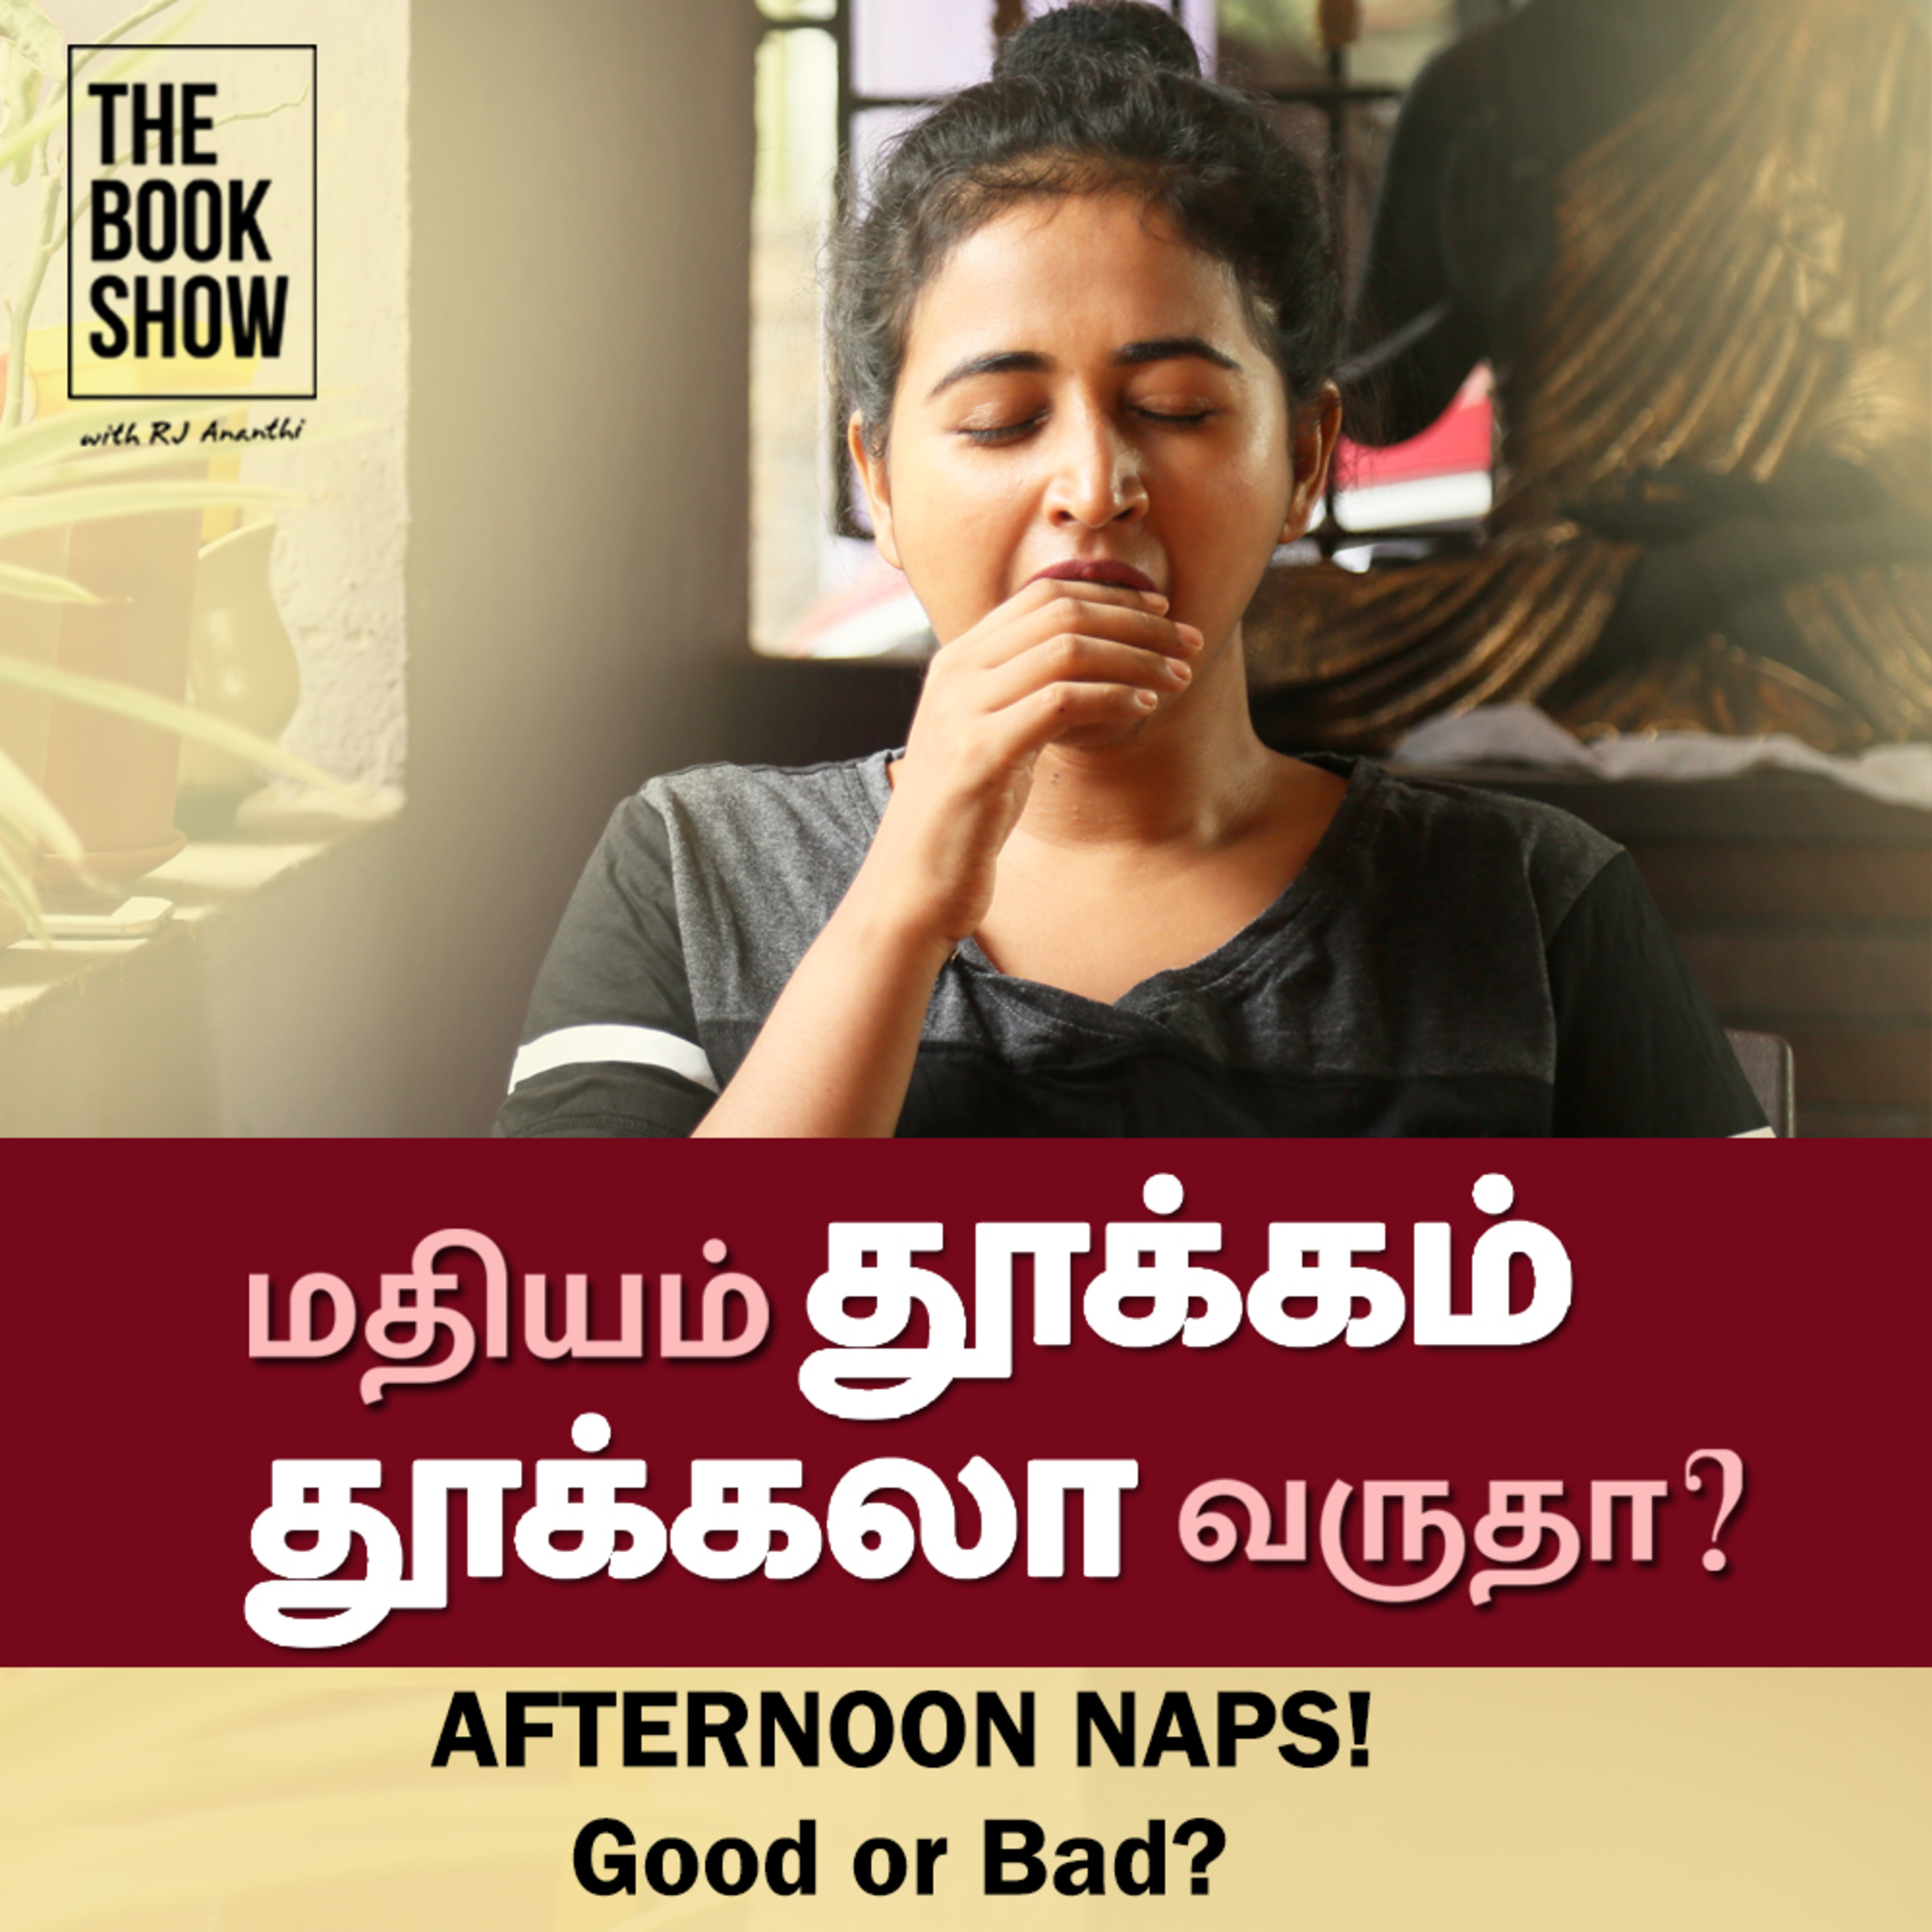 After Effects of Afternoon Naps   Bookmark - Why We Sleep?   The Book Show ft. RJ Ananthi